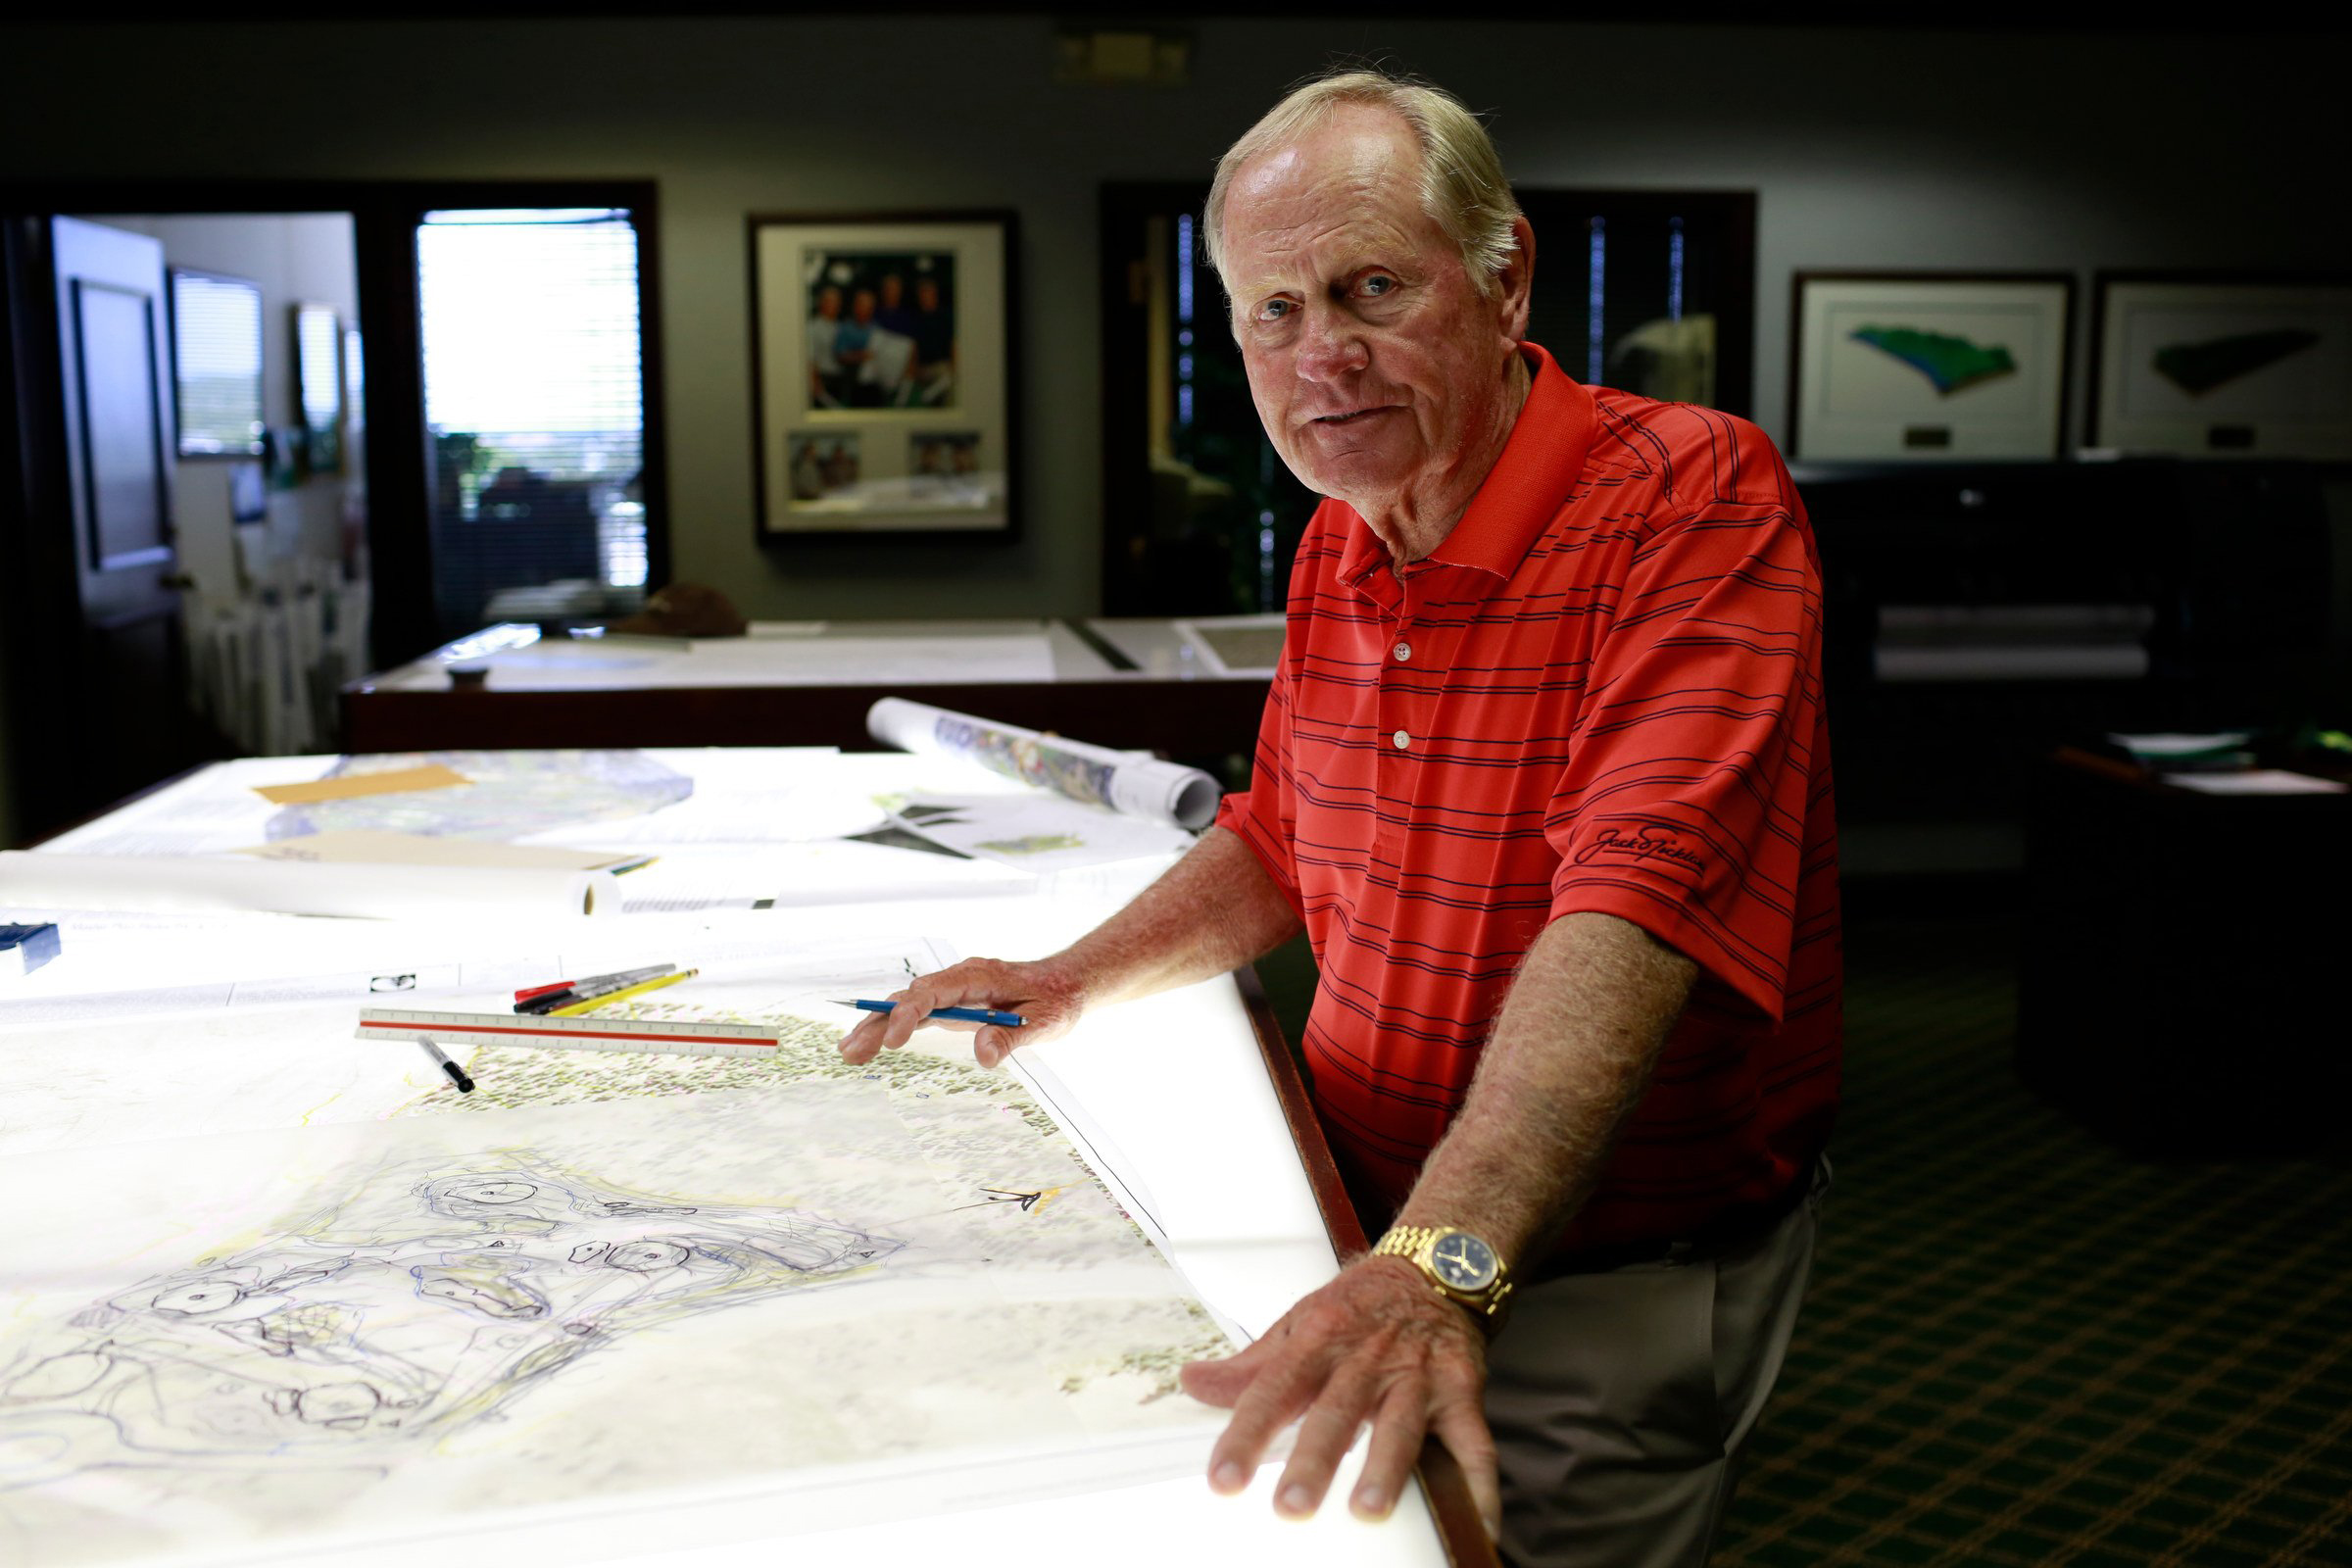 A portrait of Jack Nicklaus, the course designer, in North Palm Beach, Fla. in June 2014.